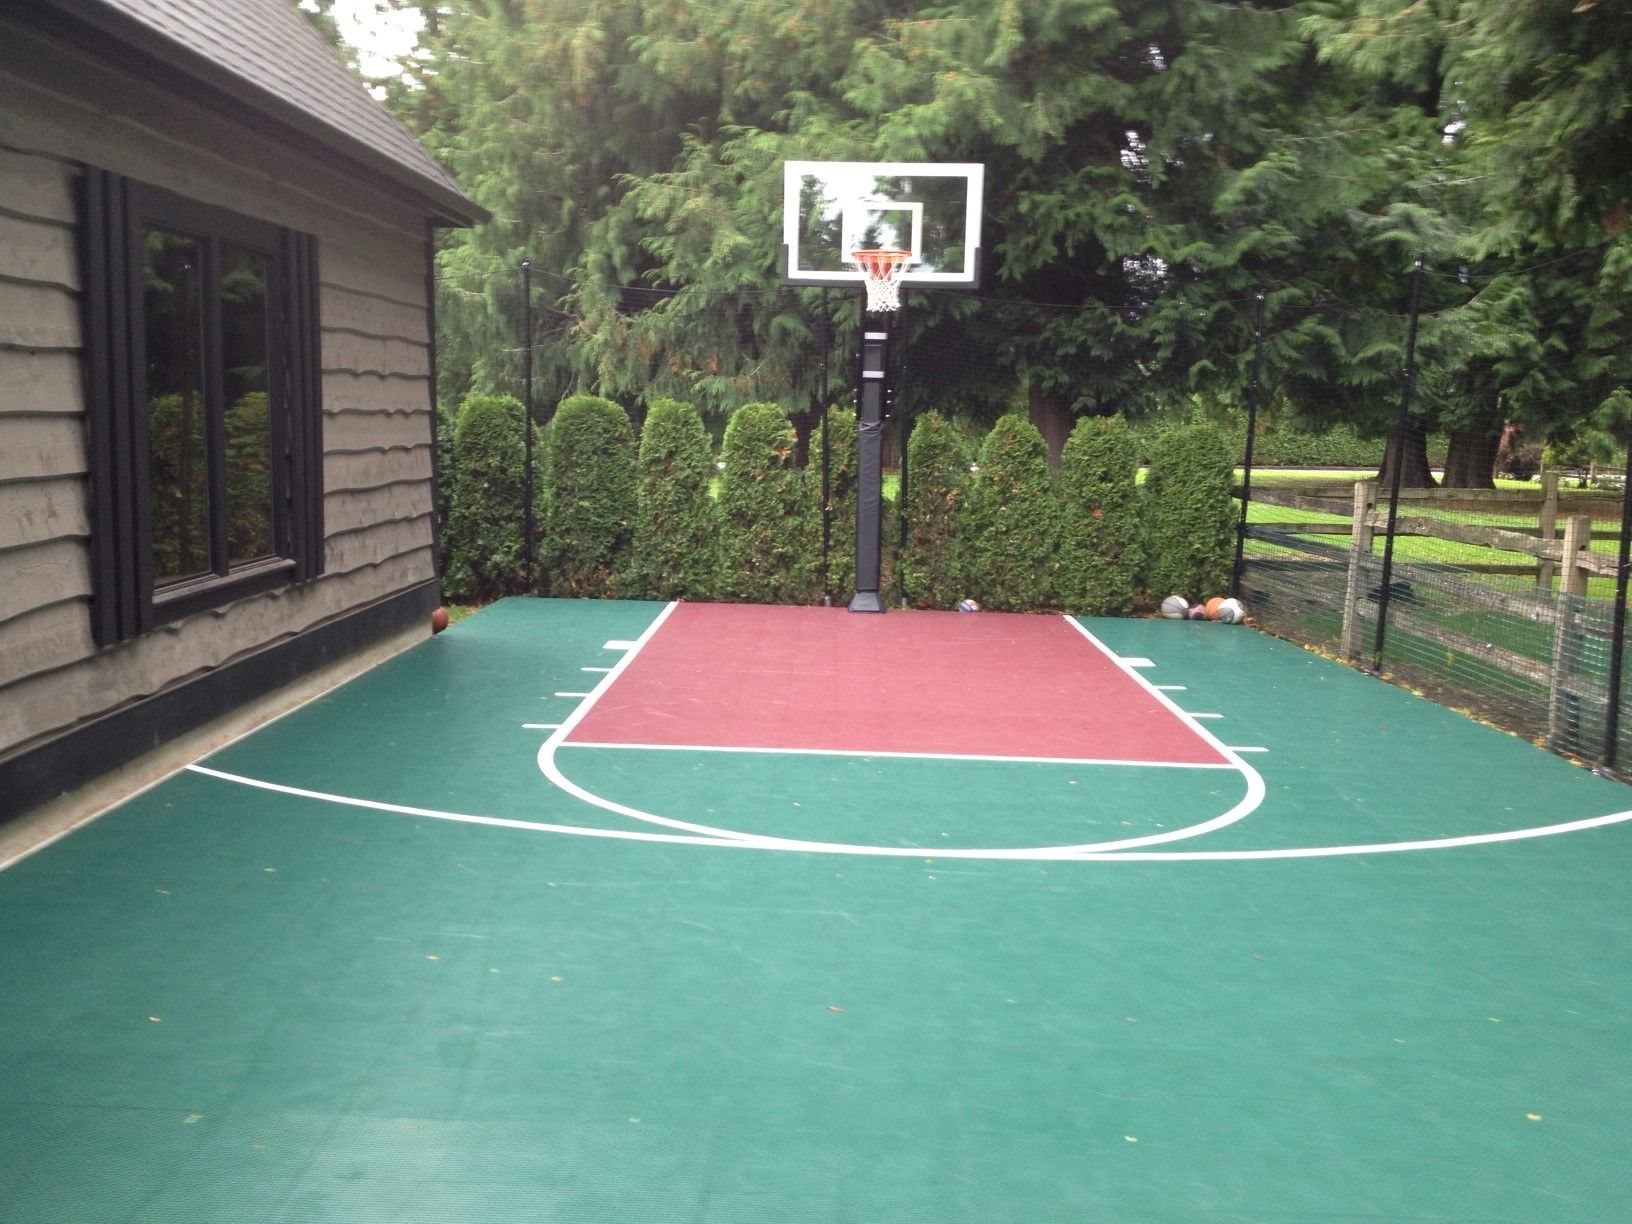 this custom teal colored court is home to a pro dunk gold